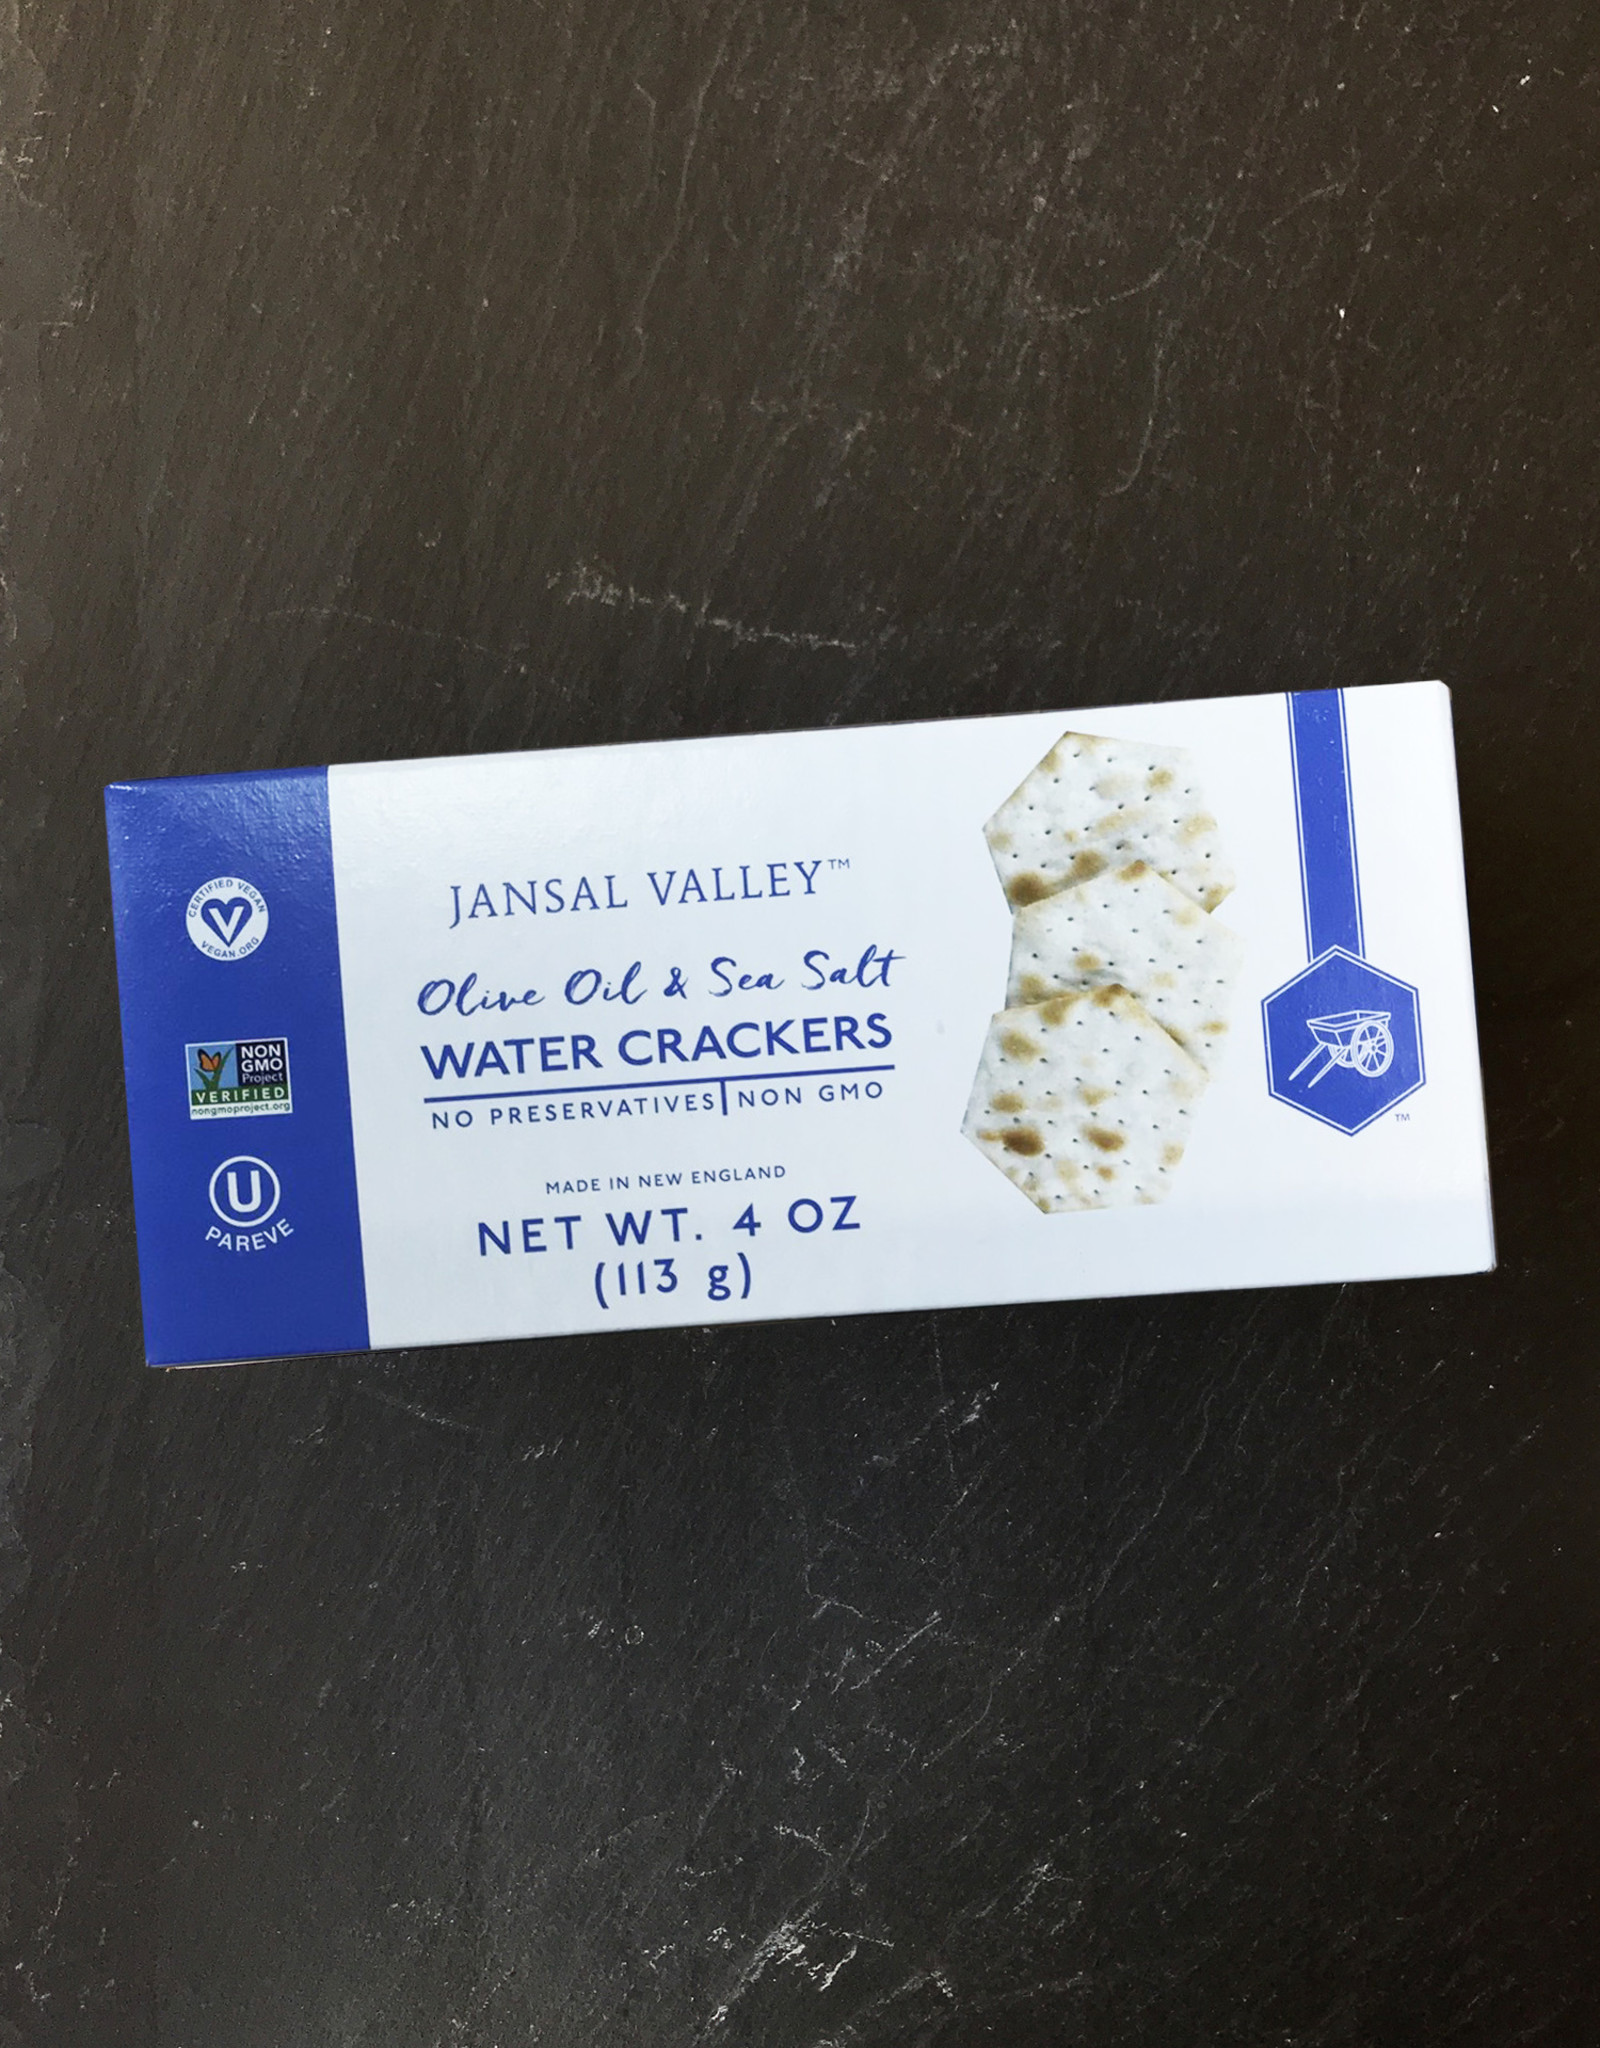 Sid Wainer Jansal Valley Olive Oil and Salt Water Crackers